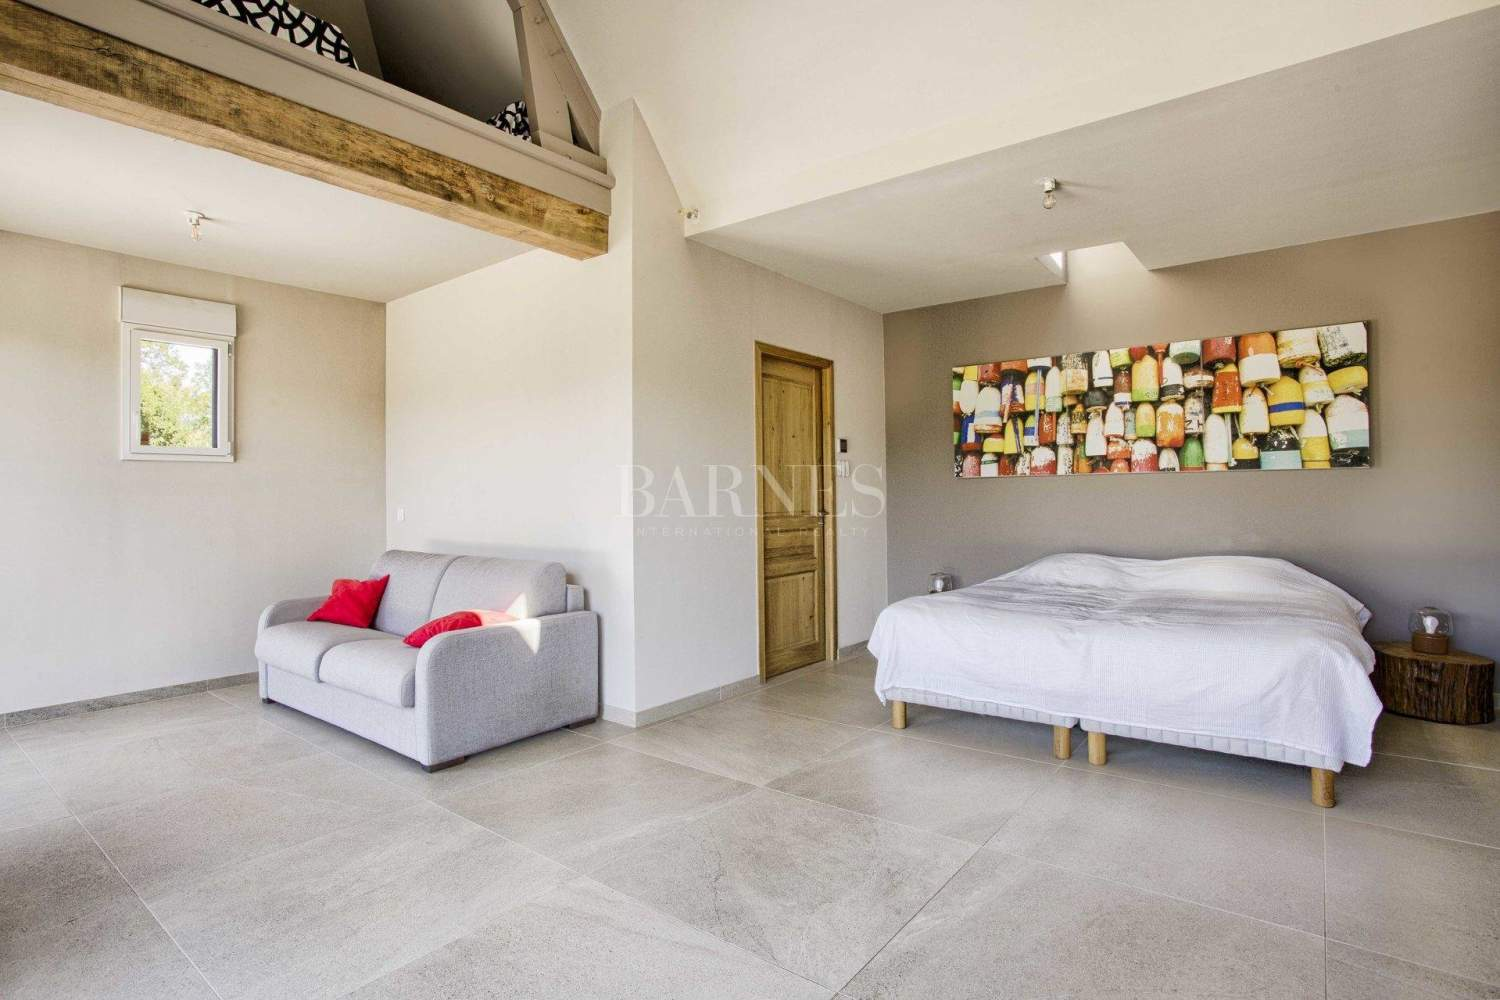 Gonneville Sur Mer  - Manor house 6 Bedrooms - picture 15